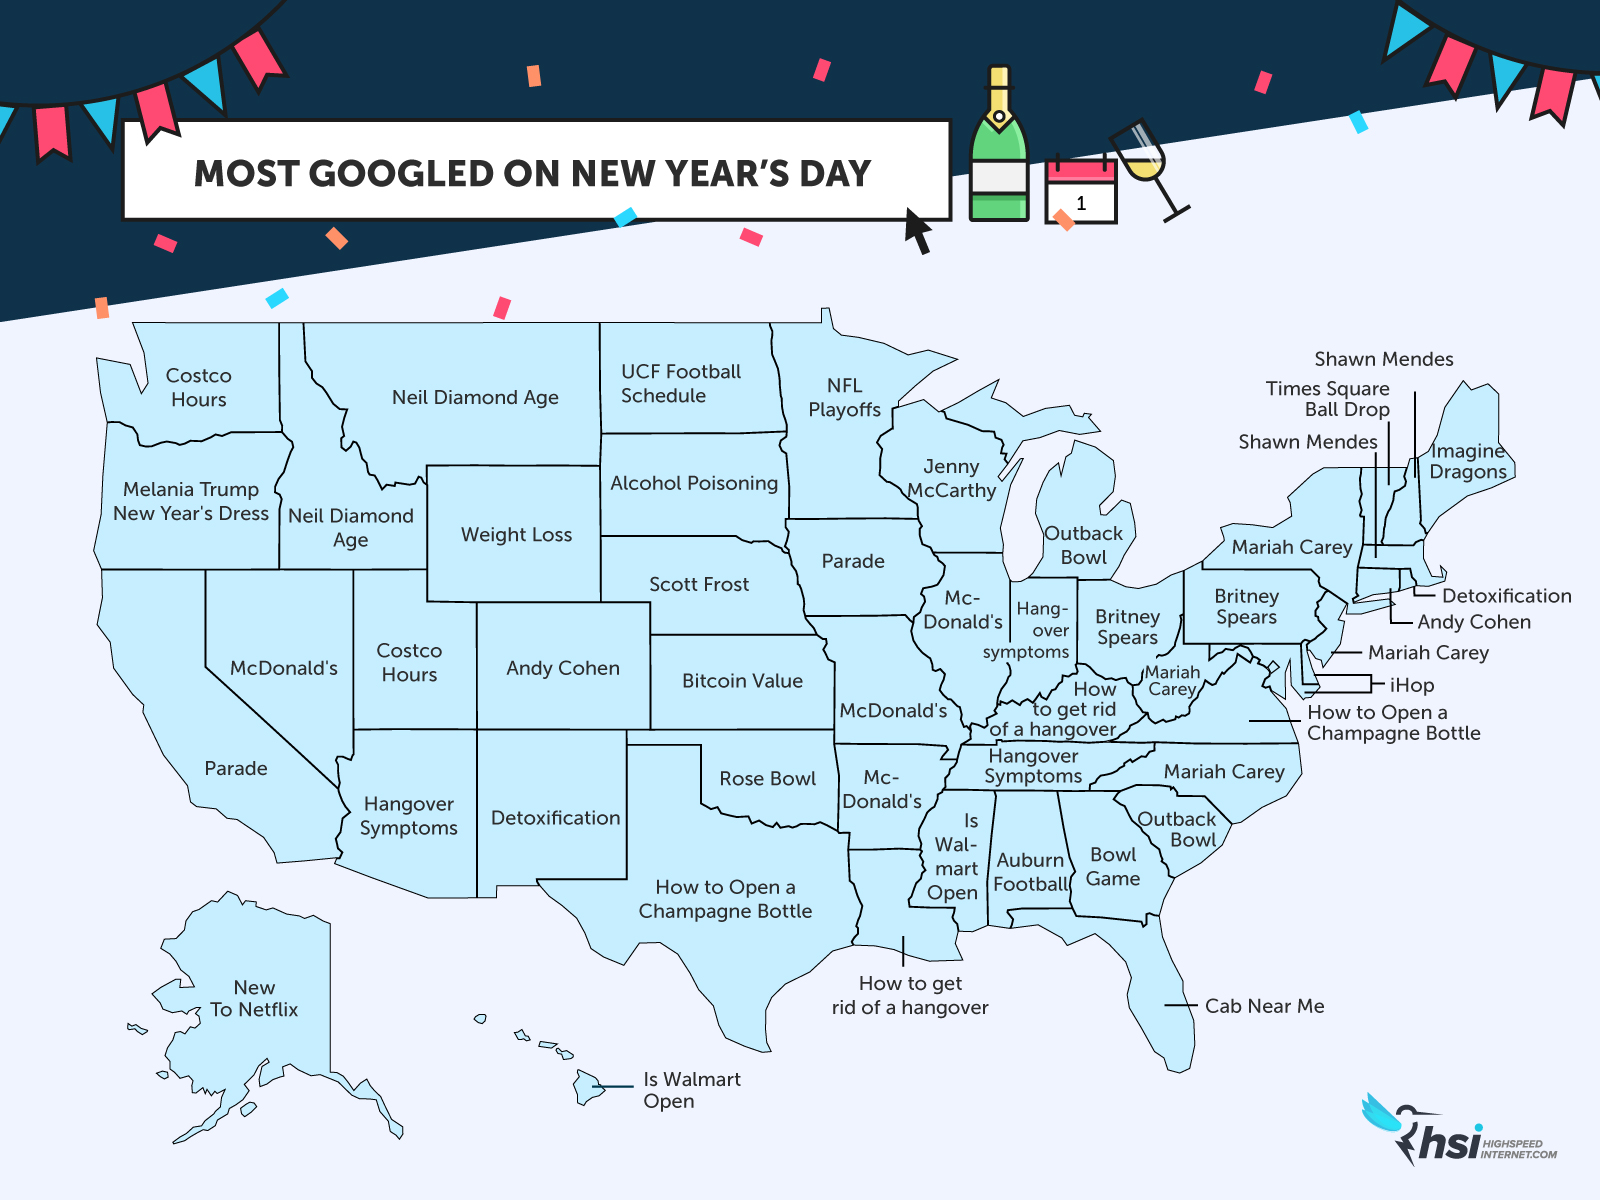 Every State's Most Googled Search on New Year's Day